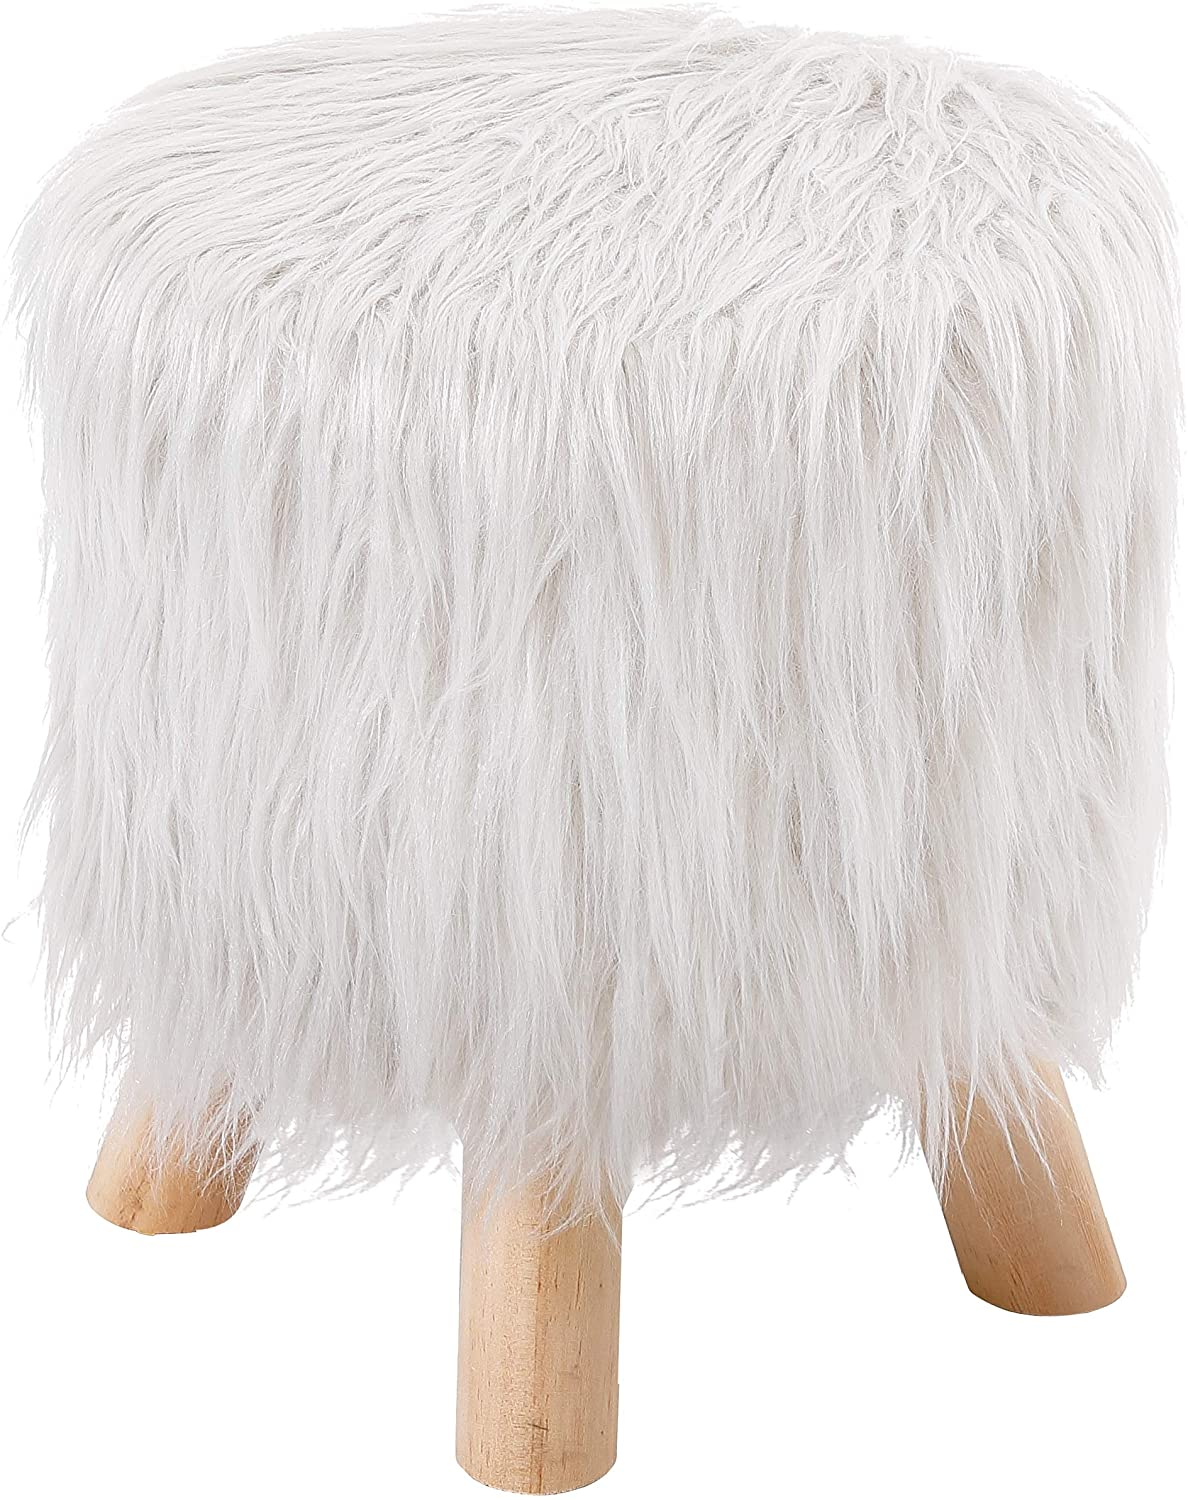 Faux Fur Foot Stool Ottoman - Soft Padded Vanity Seat Multi-Purpose Wood Legs Decorative Furniture Rest